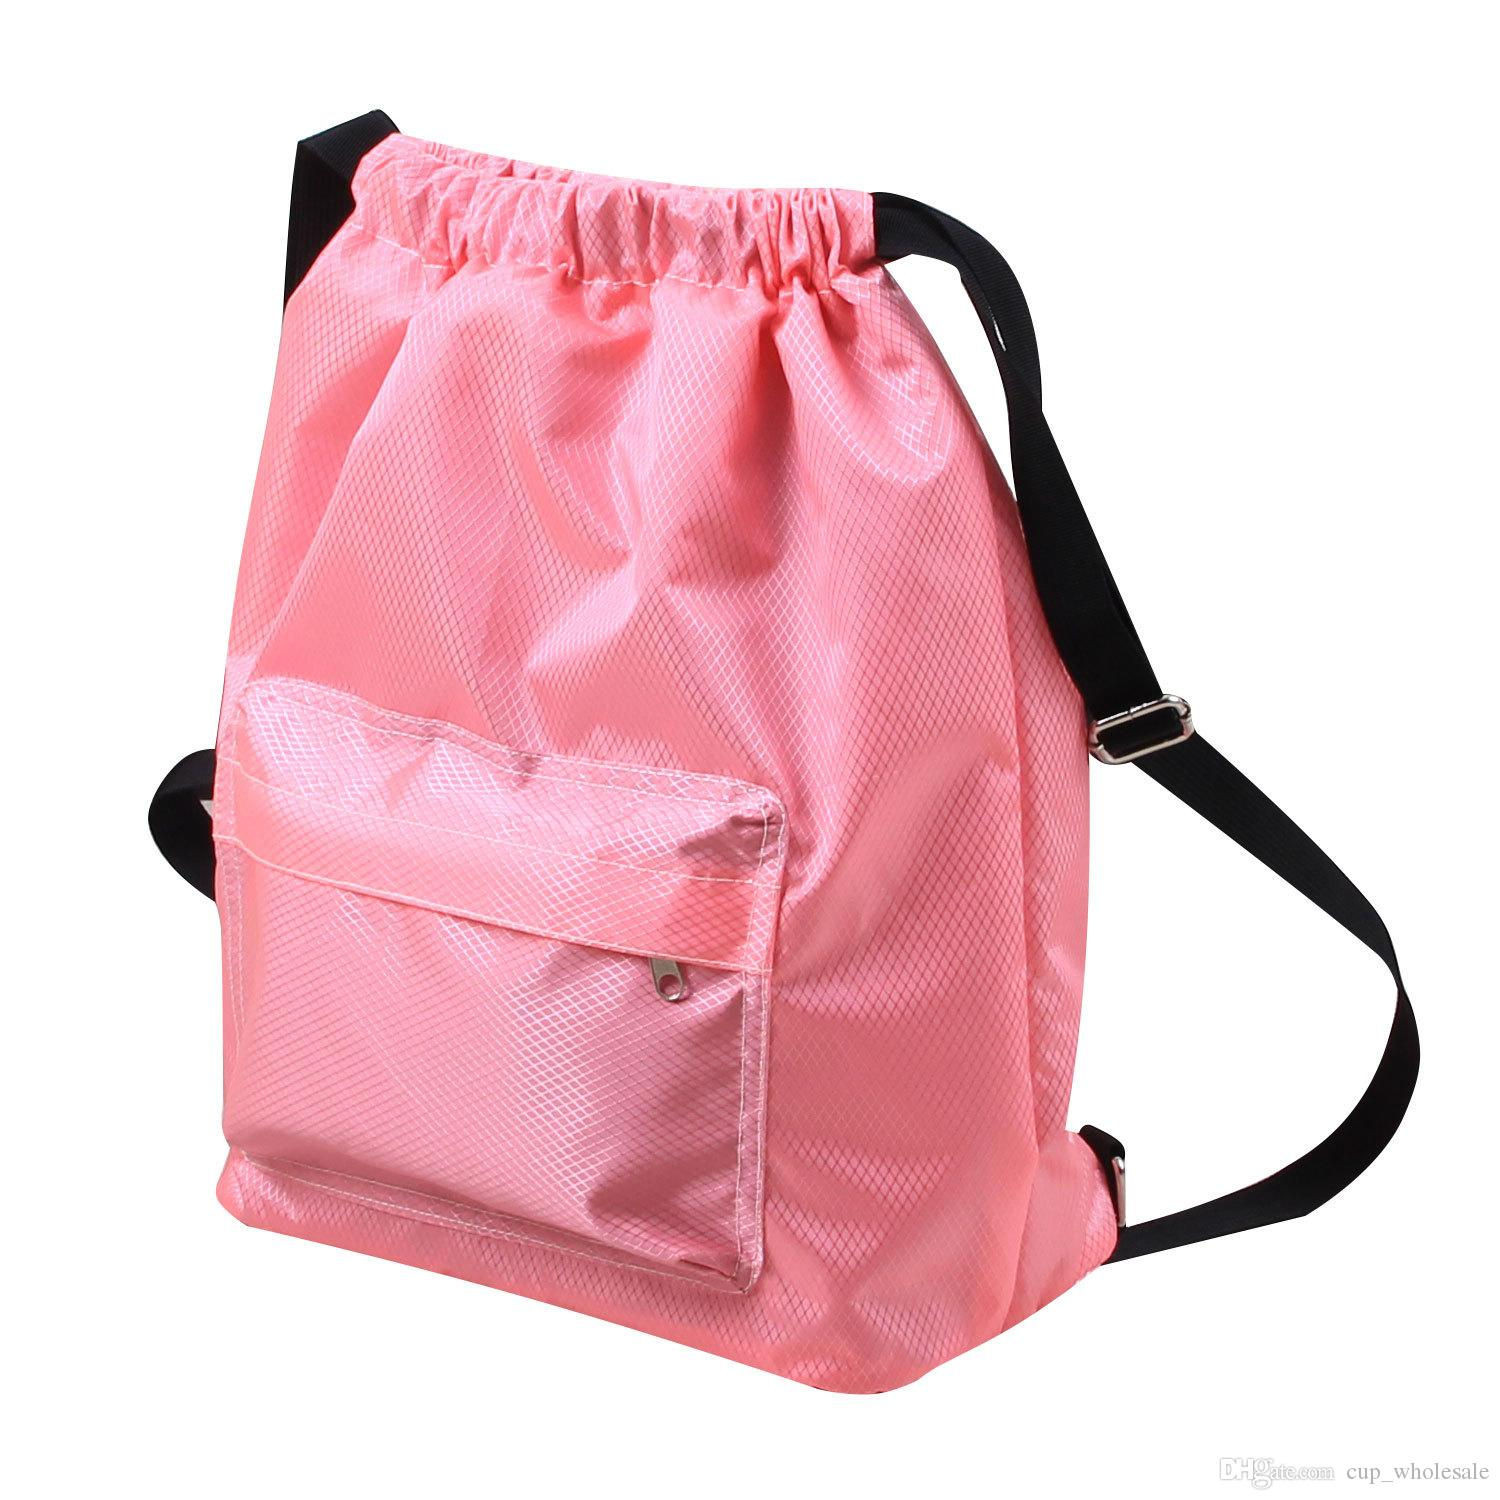 c132b61c0aee 2019 Drawstring Backpack String Bag Sackpack Cinch Water Resistant Nylon  For Gym Sport Yoga Dry Wet Separated Swimming Bag Men Women Kids From  Cup_wholesale ...